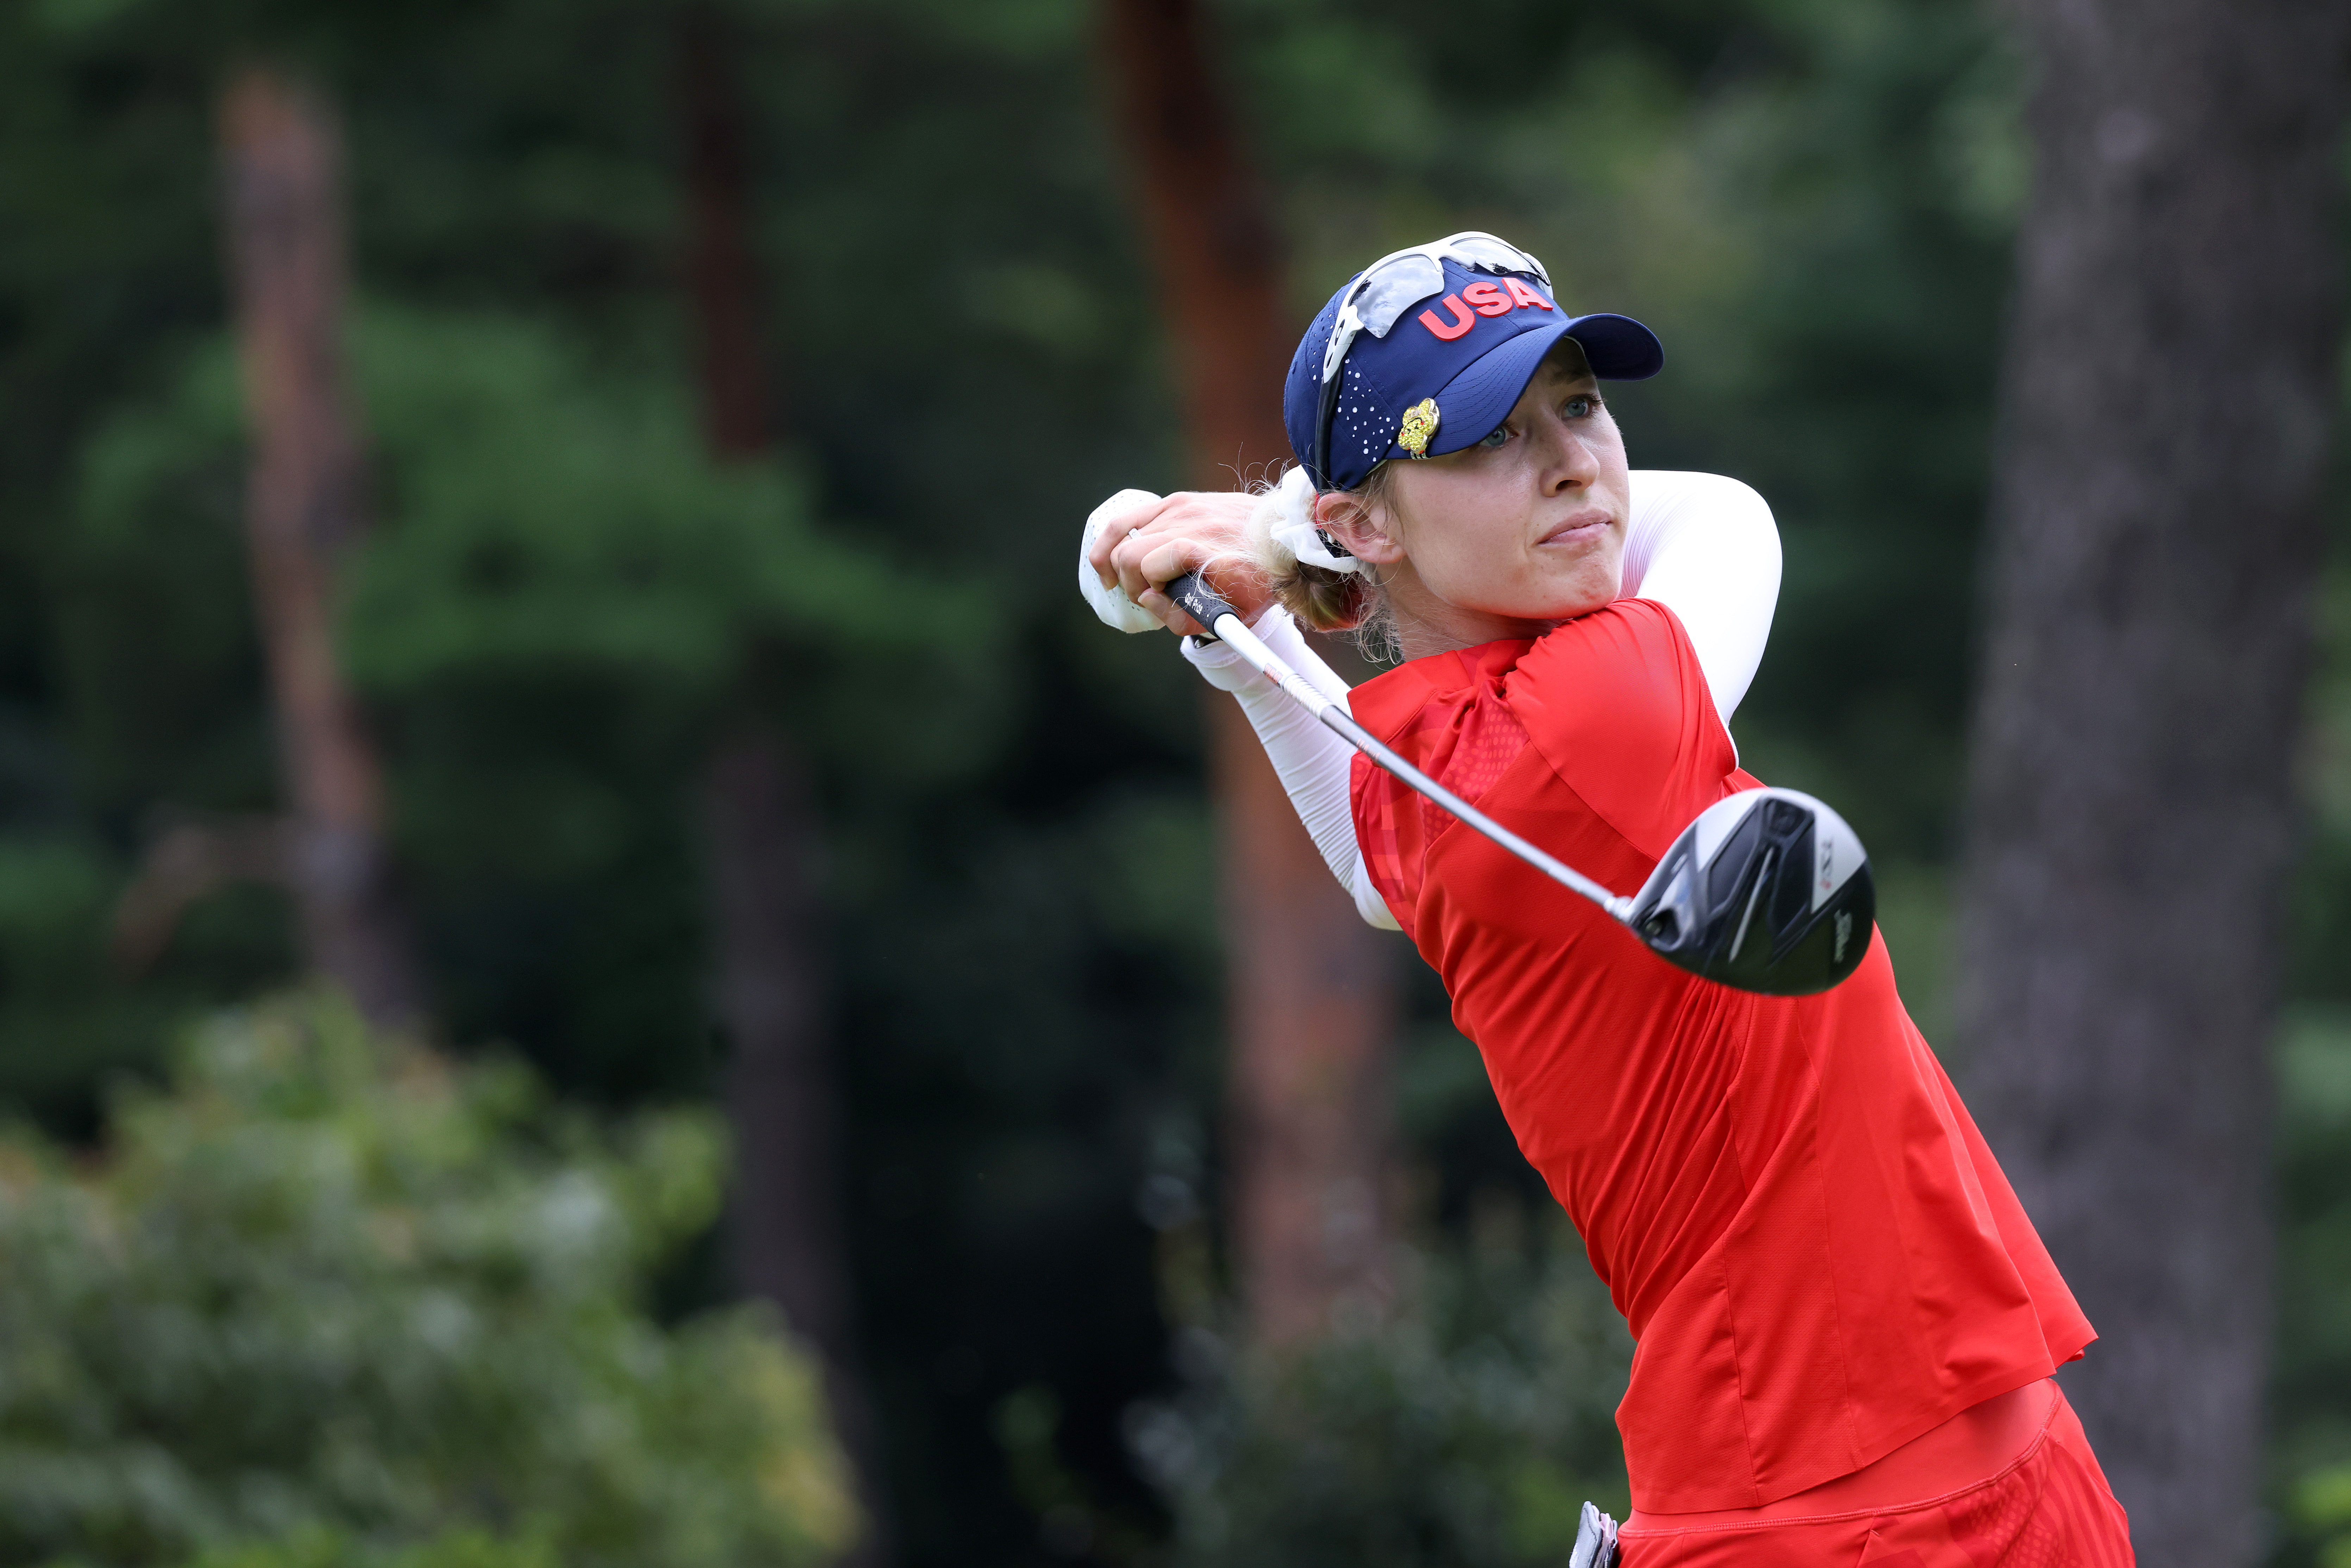 Nelly Korda of Team United States plays her shot from the 12th tee during the final round of the Women's Individual Stroke Play on day fifteen of the Tokyo 2020 Olympic Games at Kasumigaseki Country Club on August 07, 2021 in Kawagoe, Japan.